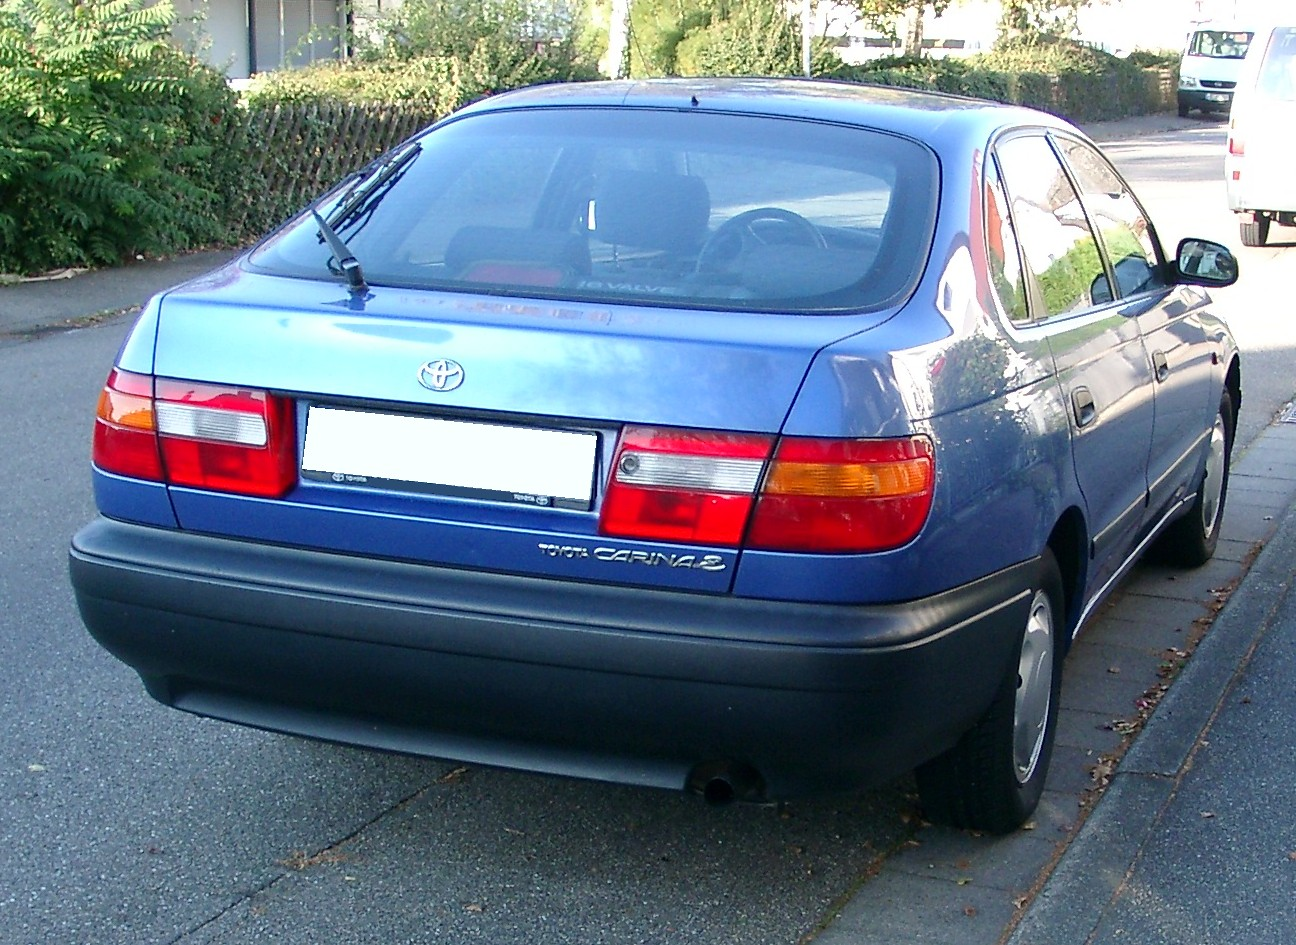 Toyota Carina E 1997 Review Amazing Pictures And Images